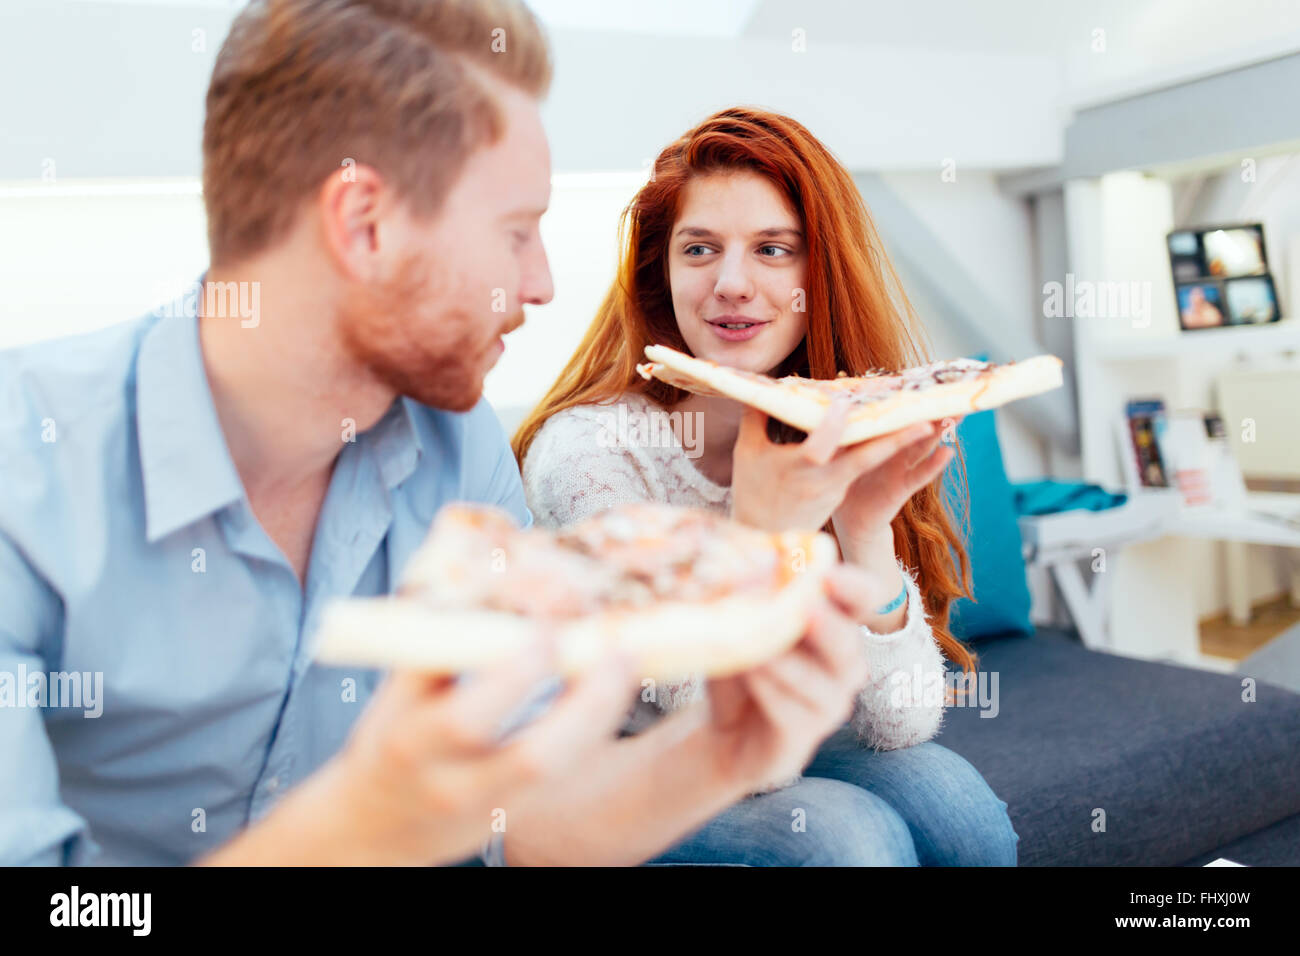 Couple sharing pizza and eating together happily - Stock Image